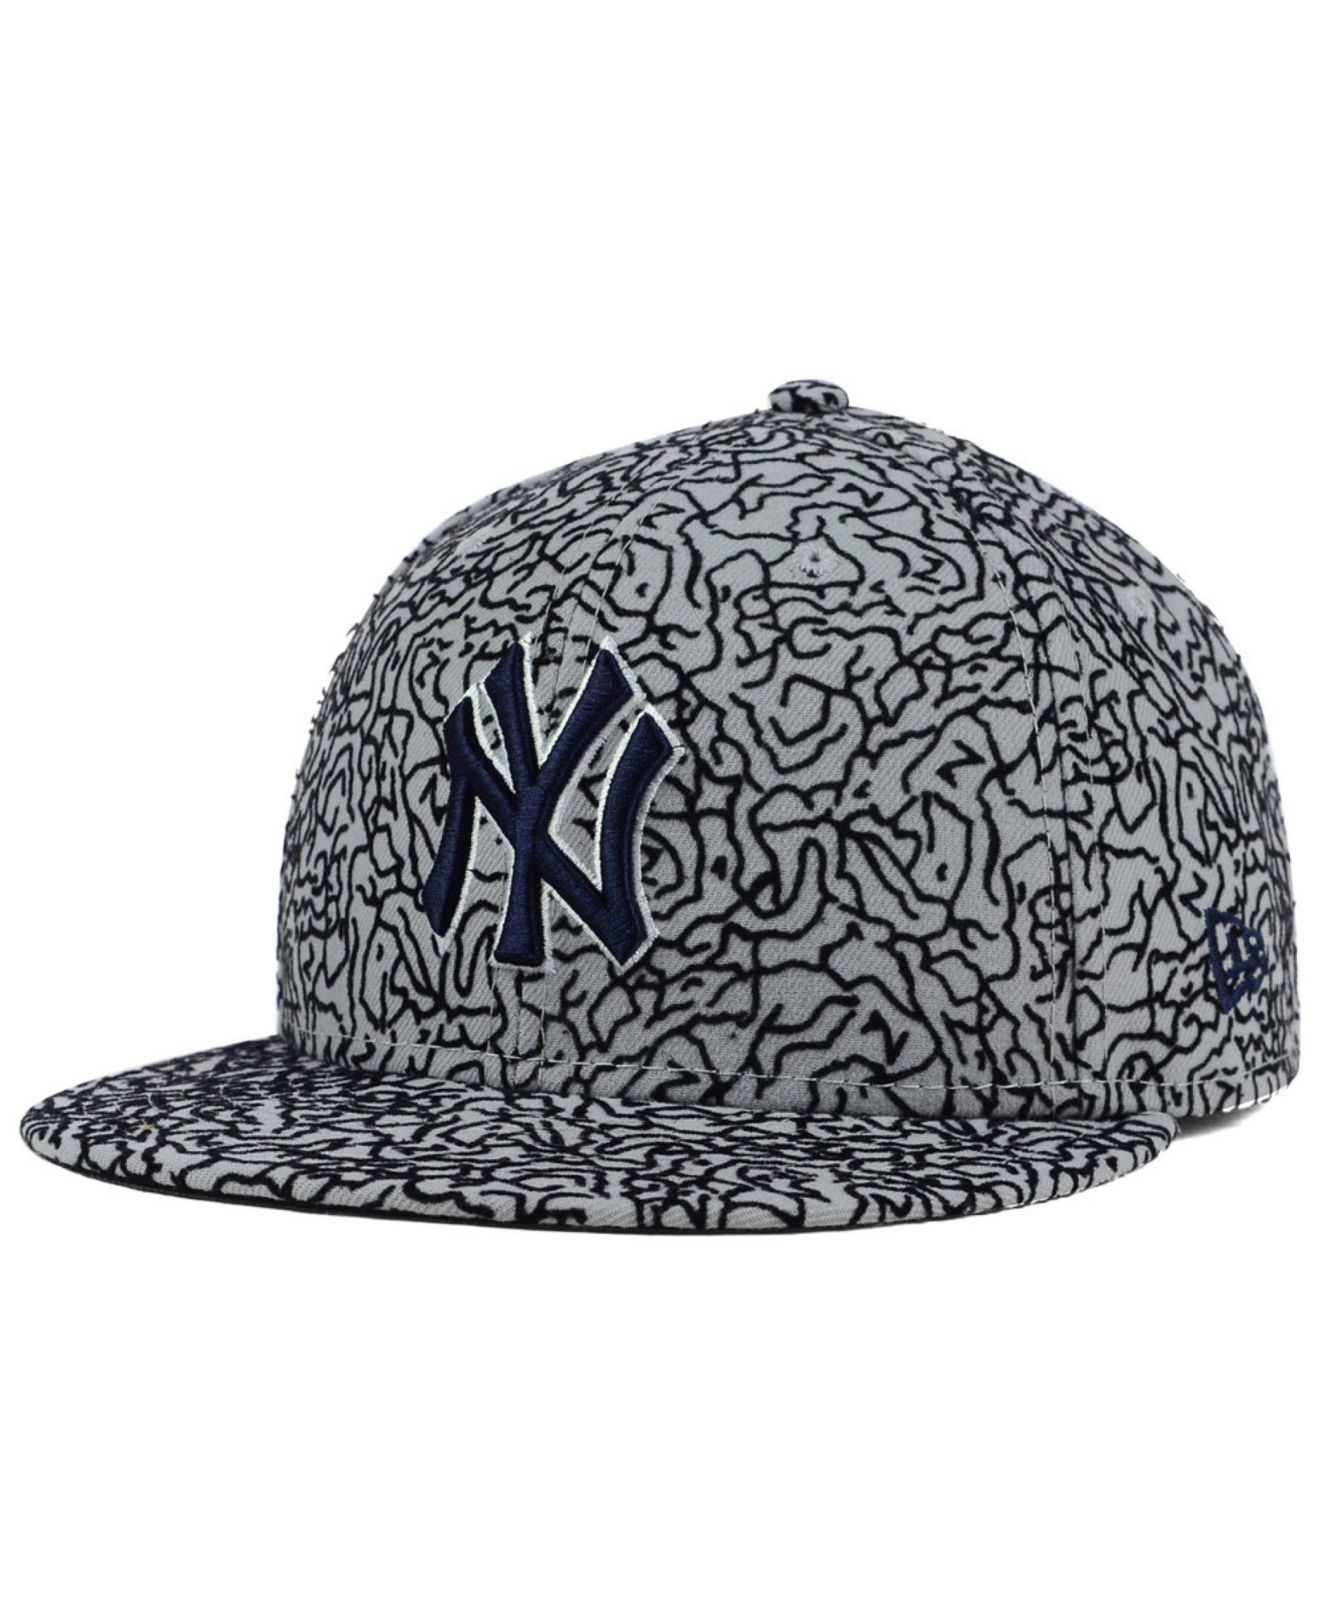 ... best price designer fashion fc265 66c67 lyst ktz new york yankees all  cement 59fifty cap 93b2a ... f57c871f0d3